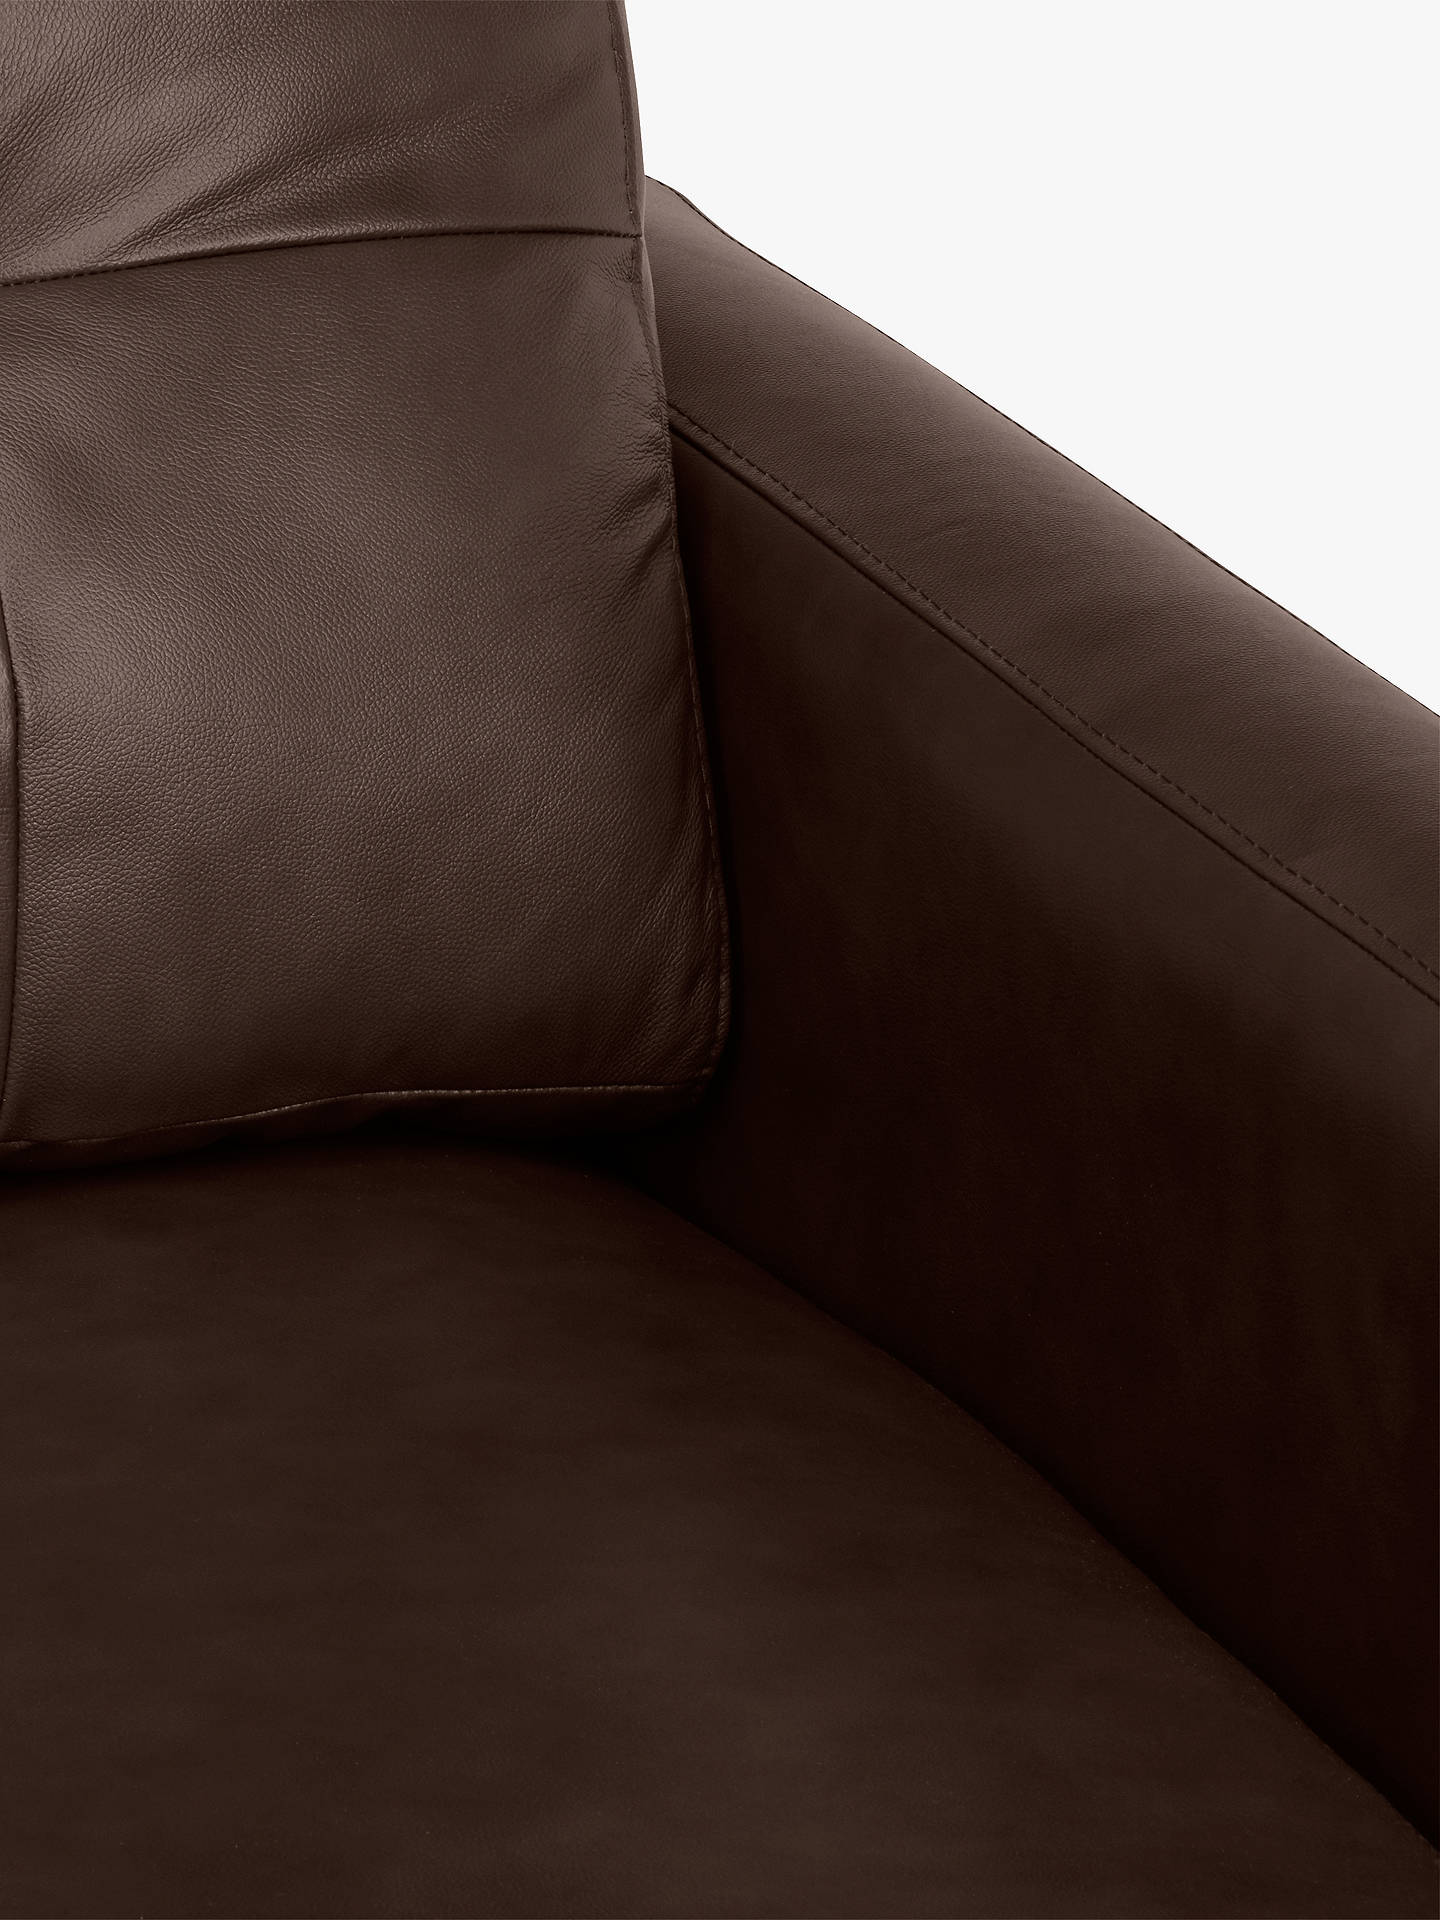 Buy John Lewis & Partners Barbican Leather RHF Grand Corner Chaise End Sofa, Dark Leg, Contempo Dark Chocolate Online at johnlewis.com